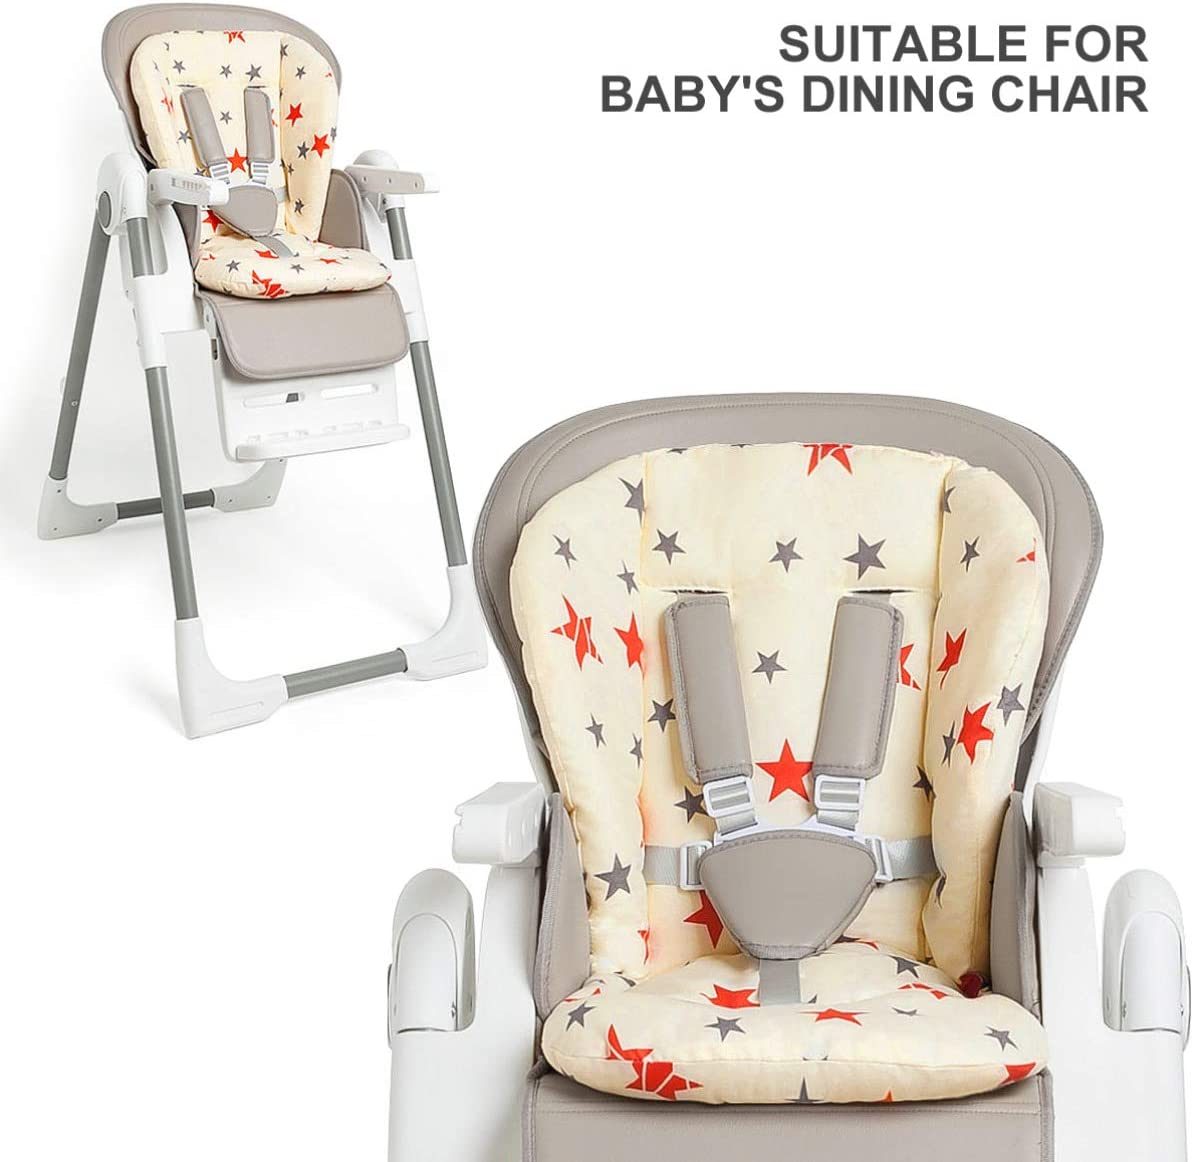 NUOBESTY Baby Stroller Cushion Pad,Pure Cotton Stroller Car High Chair Seat Cushion Liner Mat Cover Protector for Infants